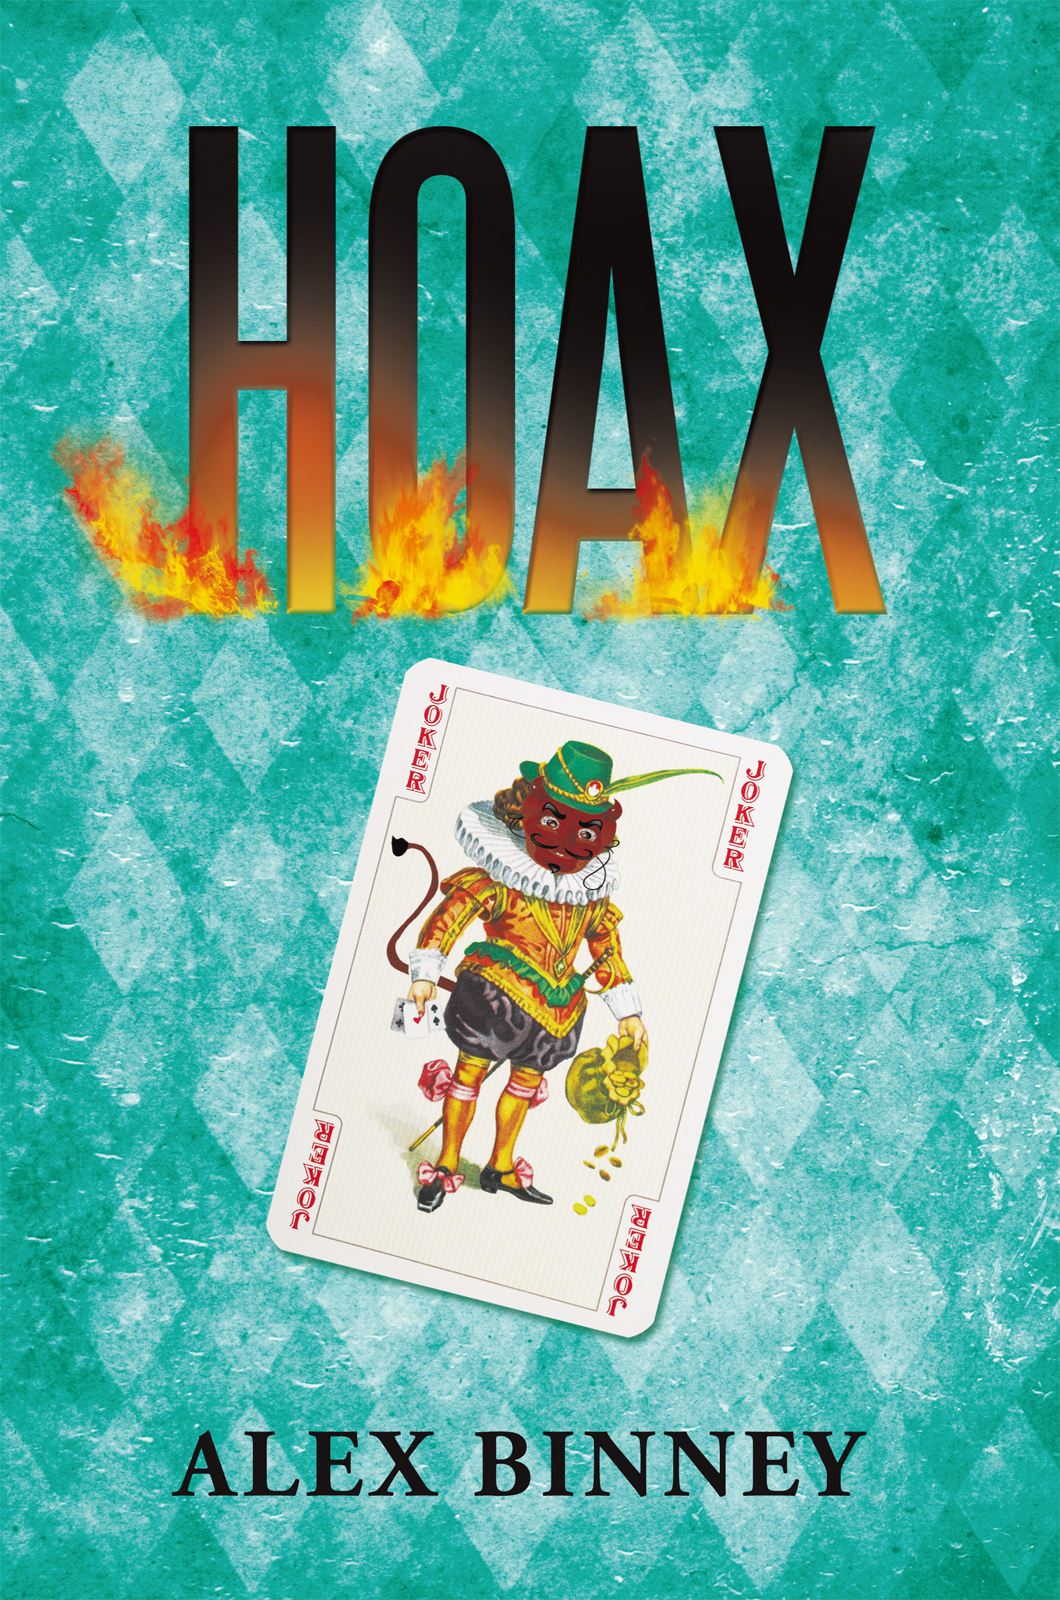 Hoax By: ALEX BINNEY